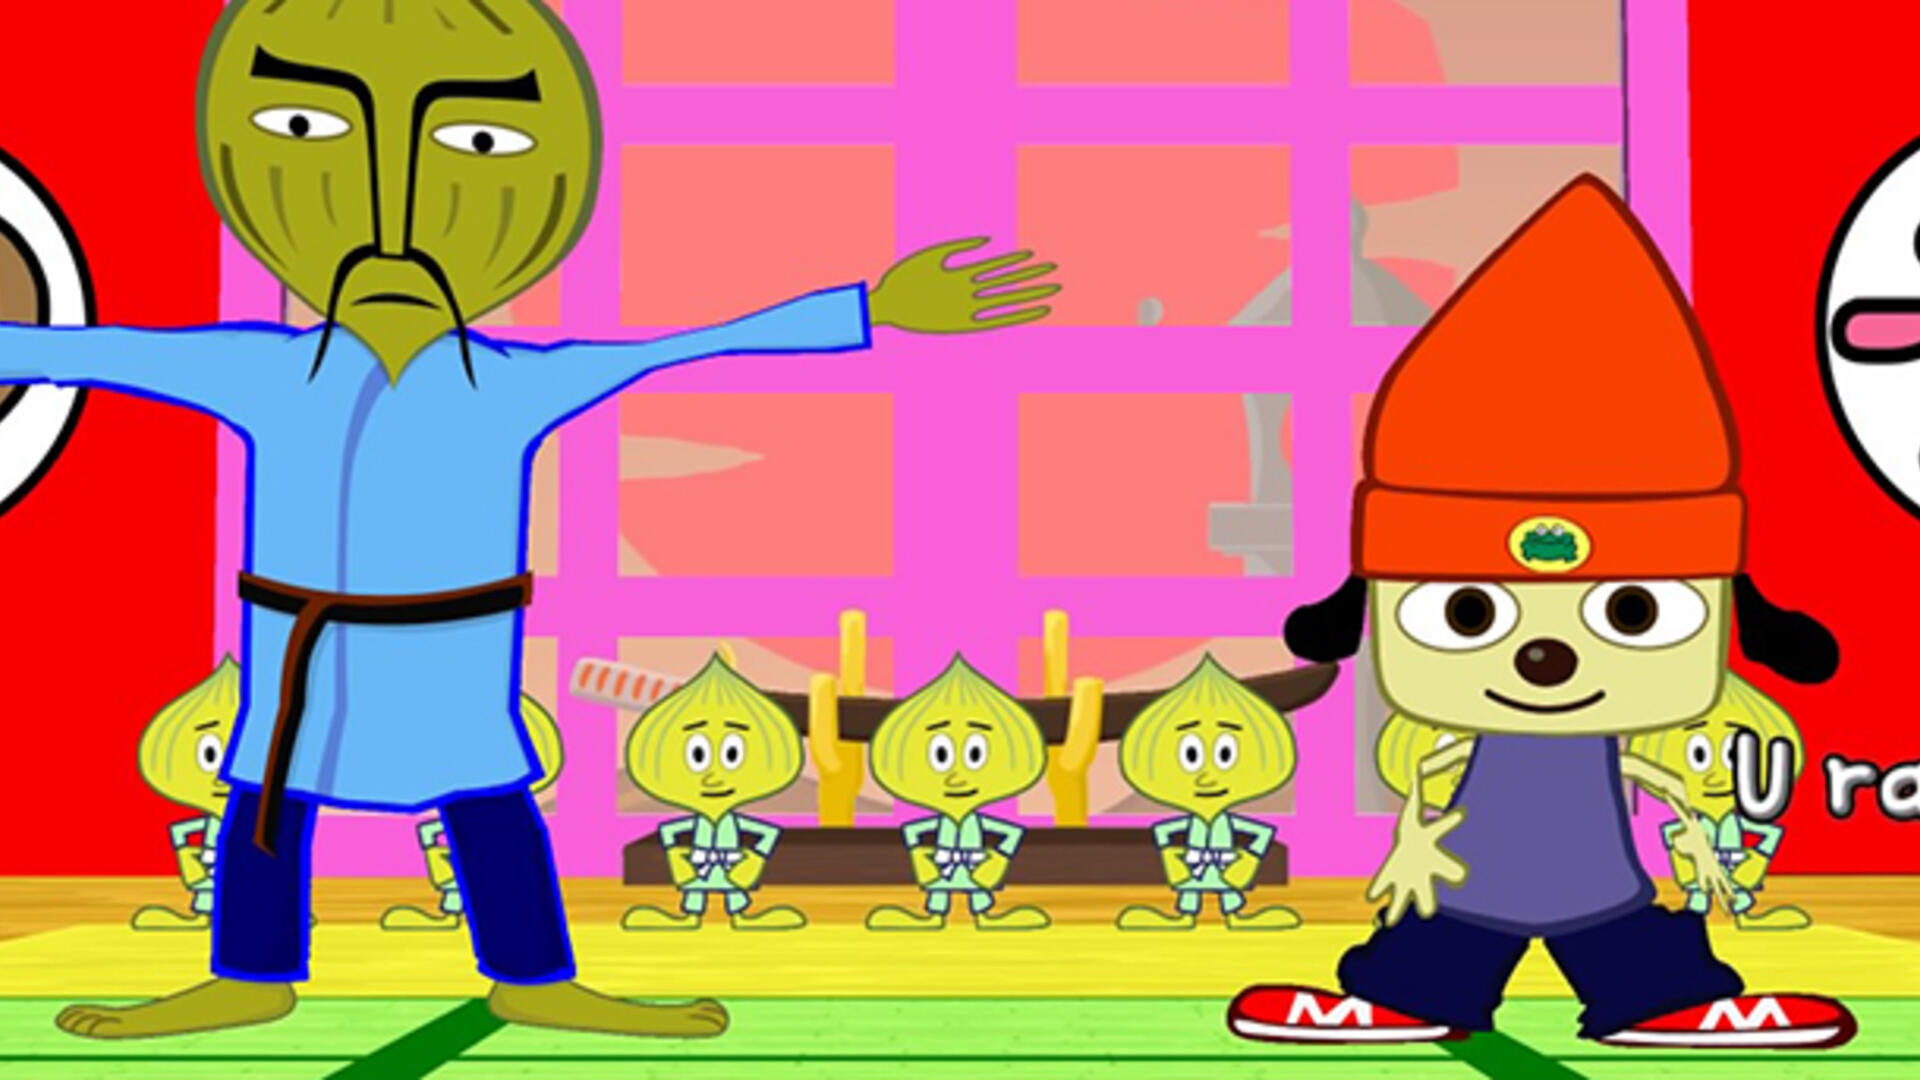 PSP Emulator Found in Parappa the Rapper Remaster, Paving Way for PSP Hacks on PS4